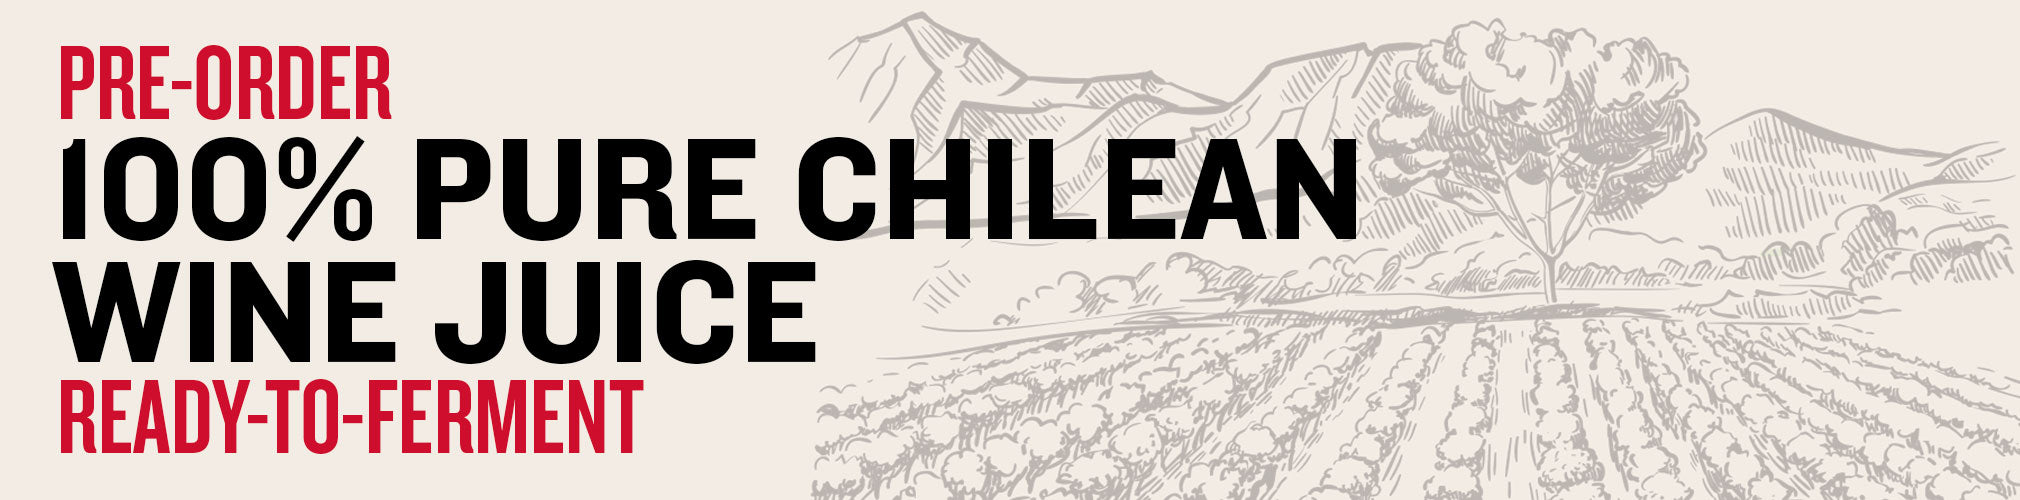 100% Pure Chilean Wine Juice available for in-store pickup at our sister-store Midwest Supplies